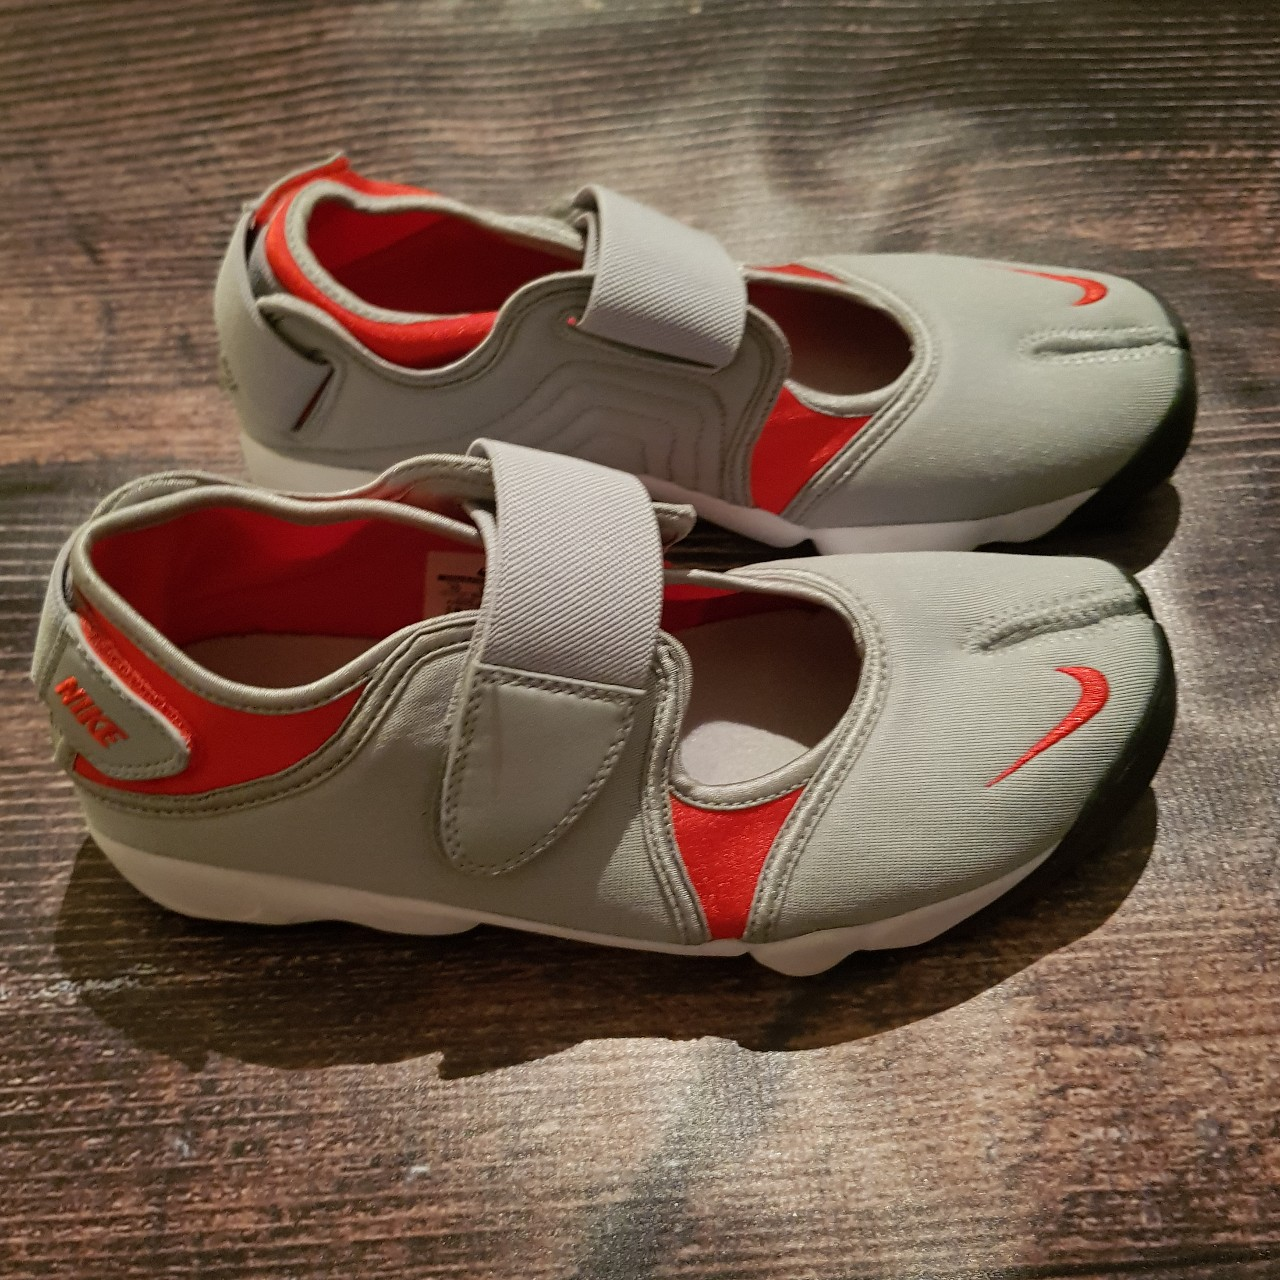 Nike Air Rifts. Adult size 9